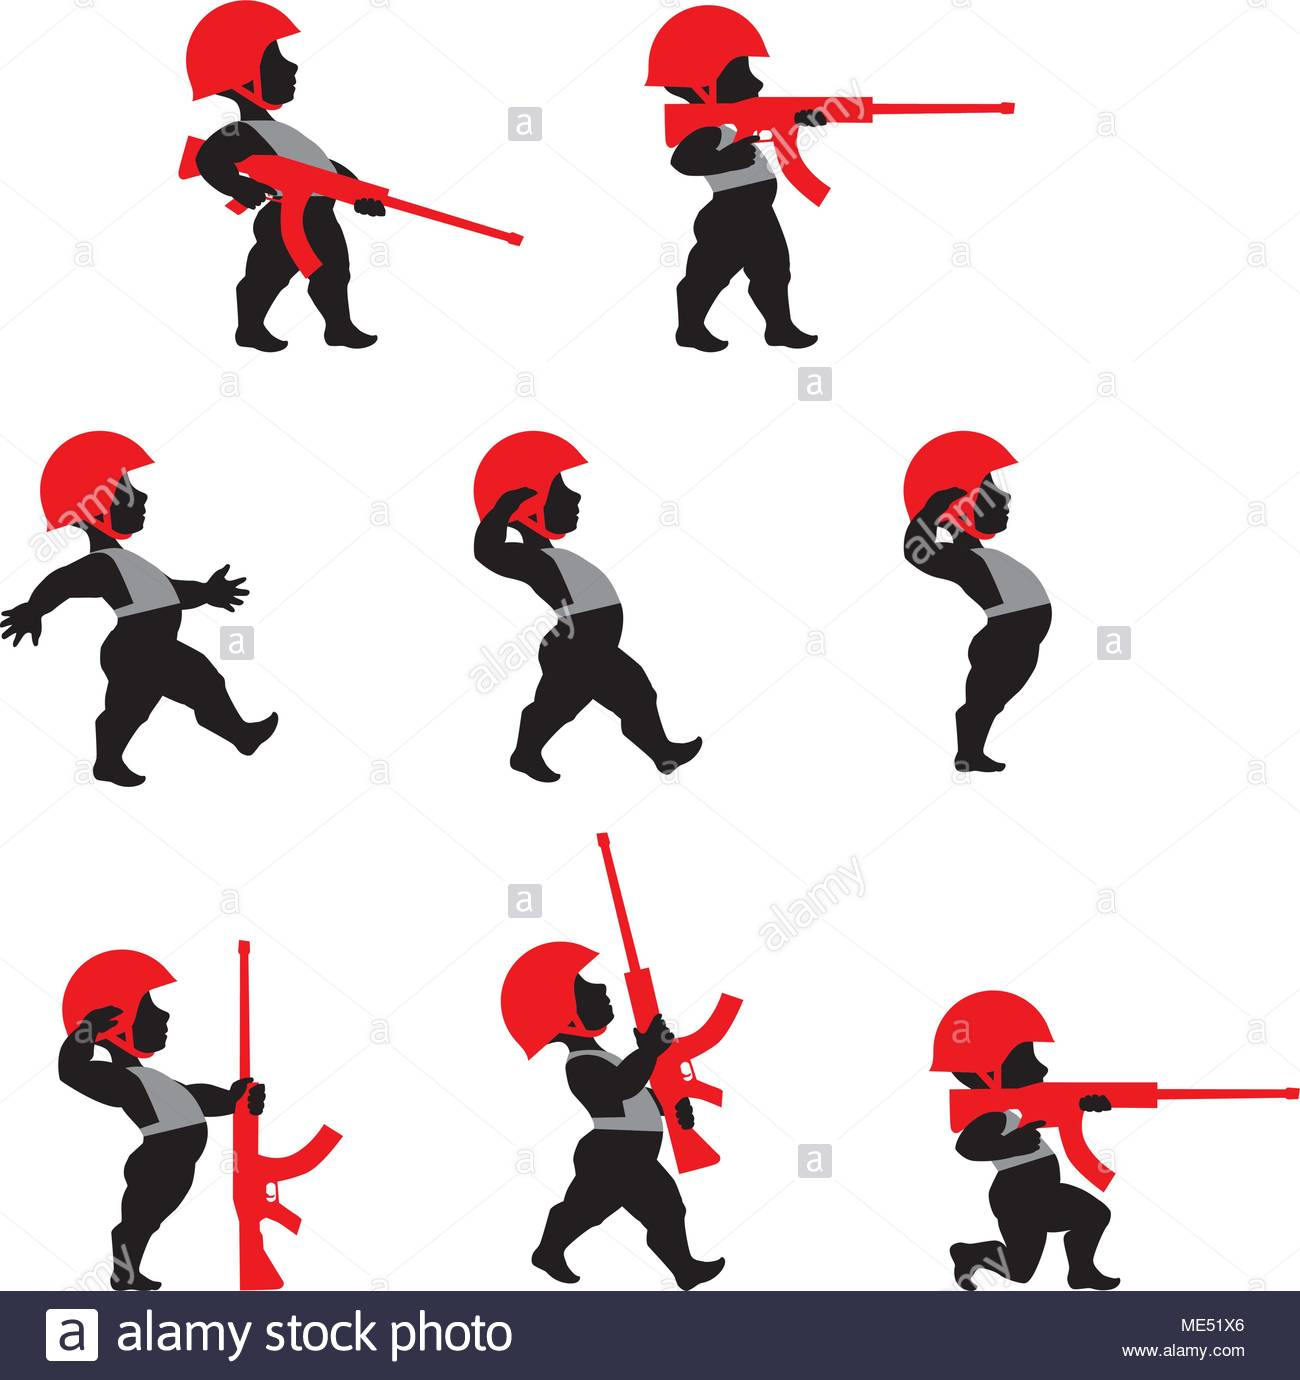 1300x1380 Soldiers Silhouette Stock Vector Images